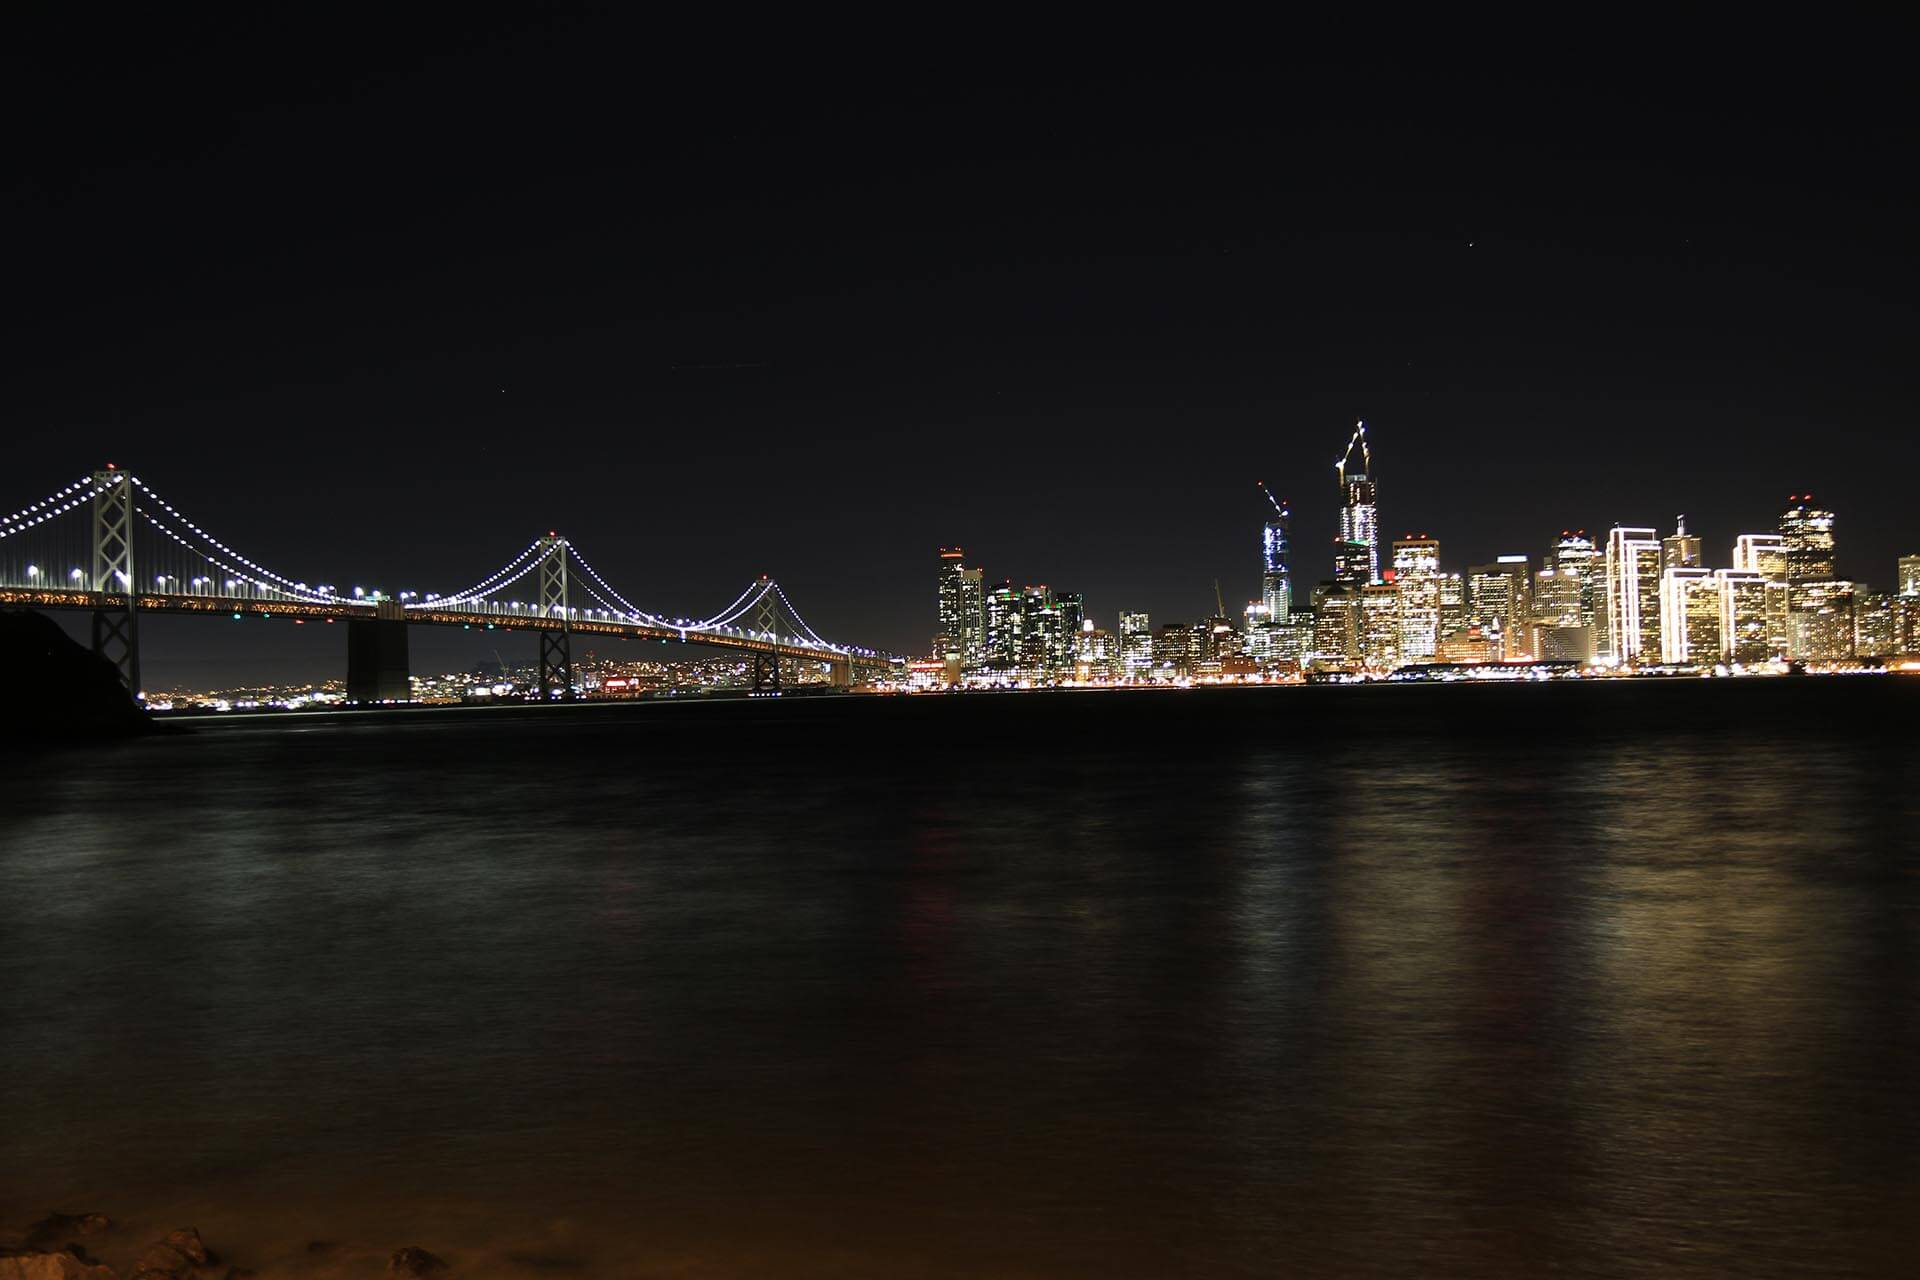 San Francisco at night John Luhr Photography